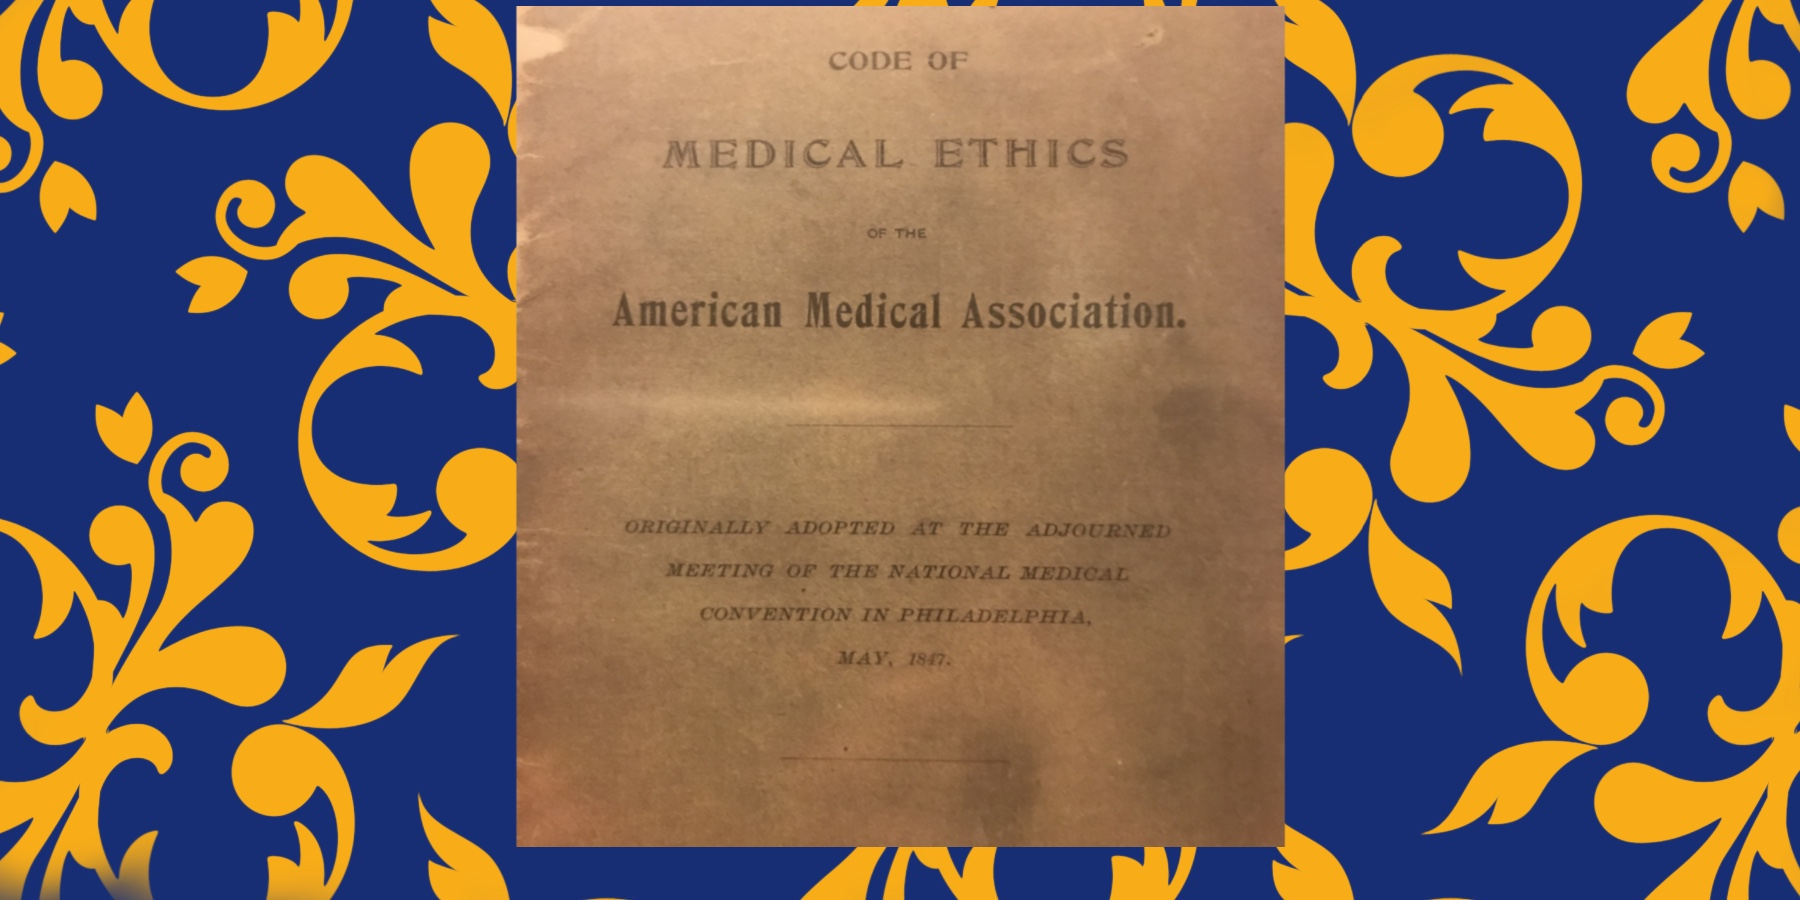 AMA Code of Medical Ethics' Opinions on Physicians